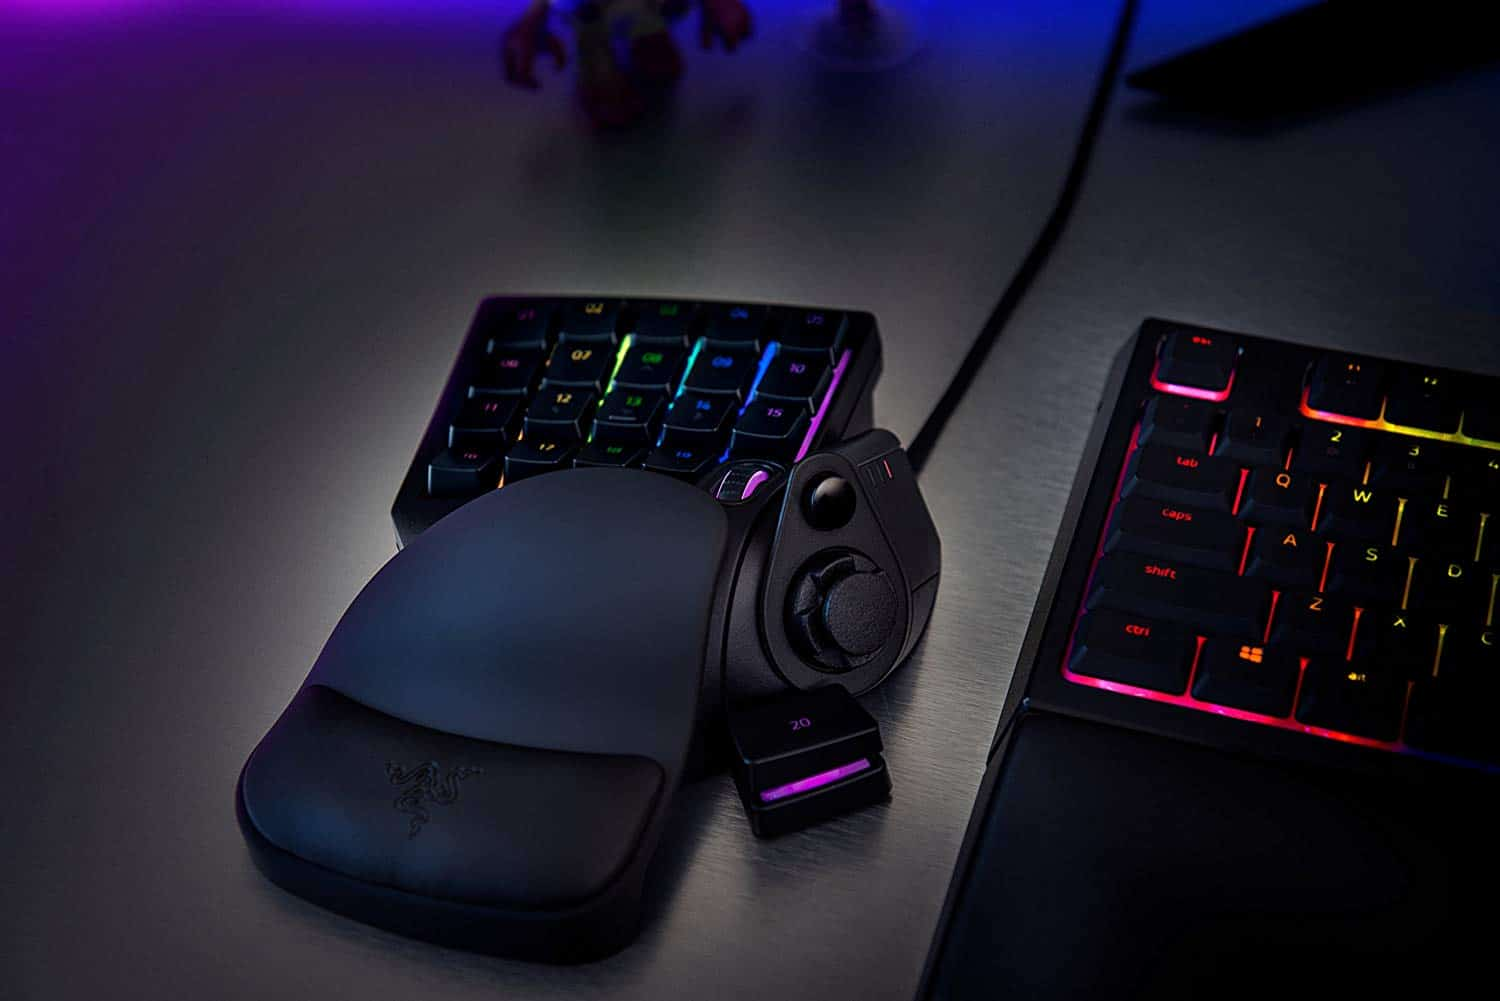 Best Gaming Keypads 2019 [UPDATED TODAY] - The Ultimate Guide